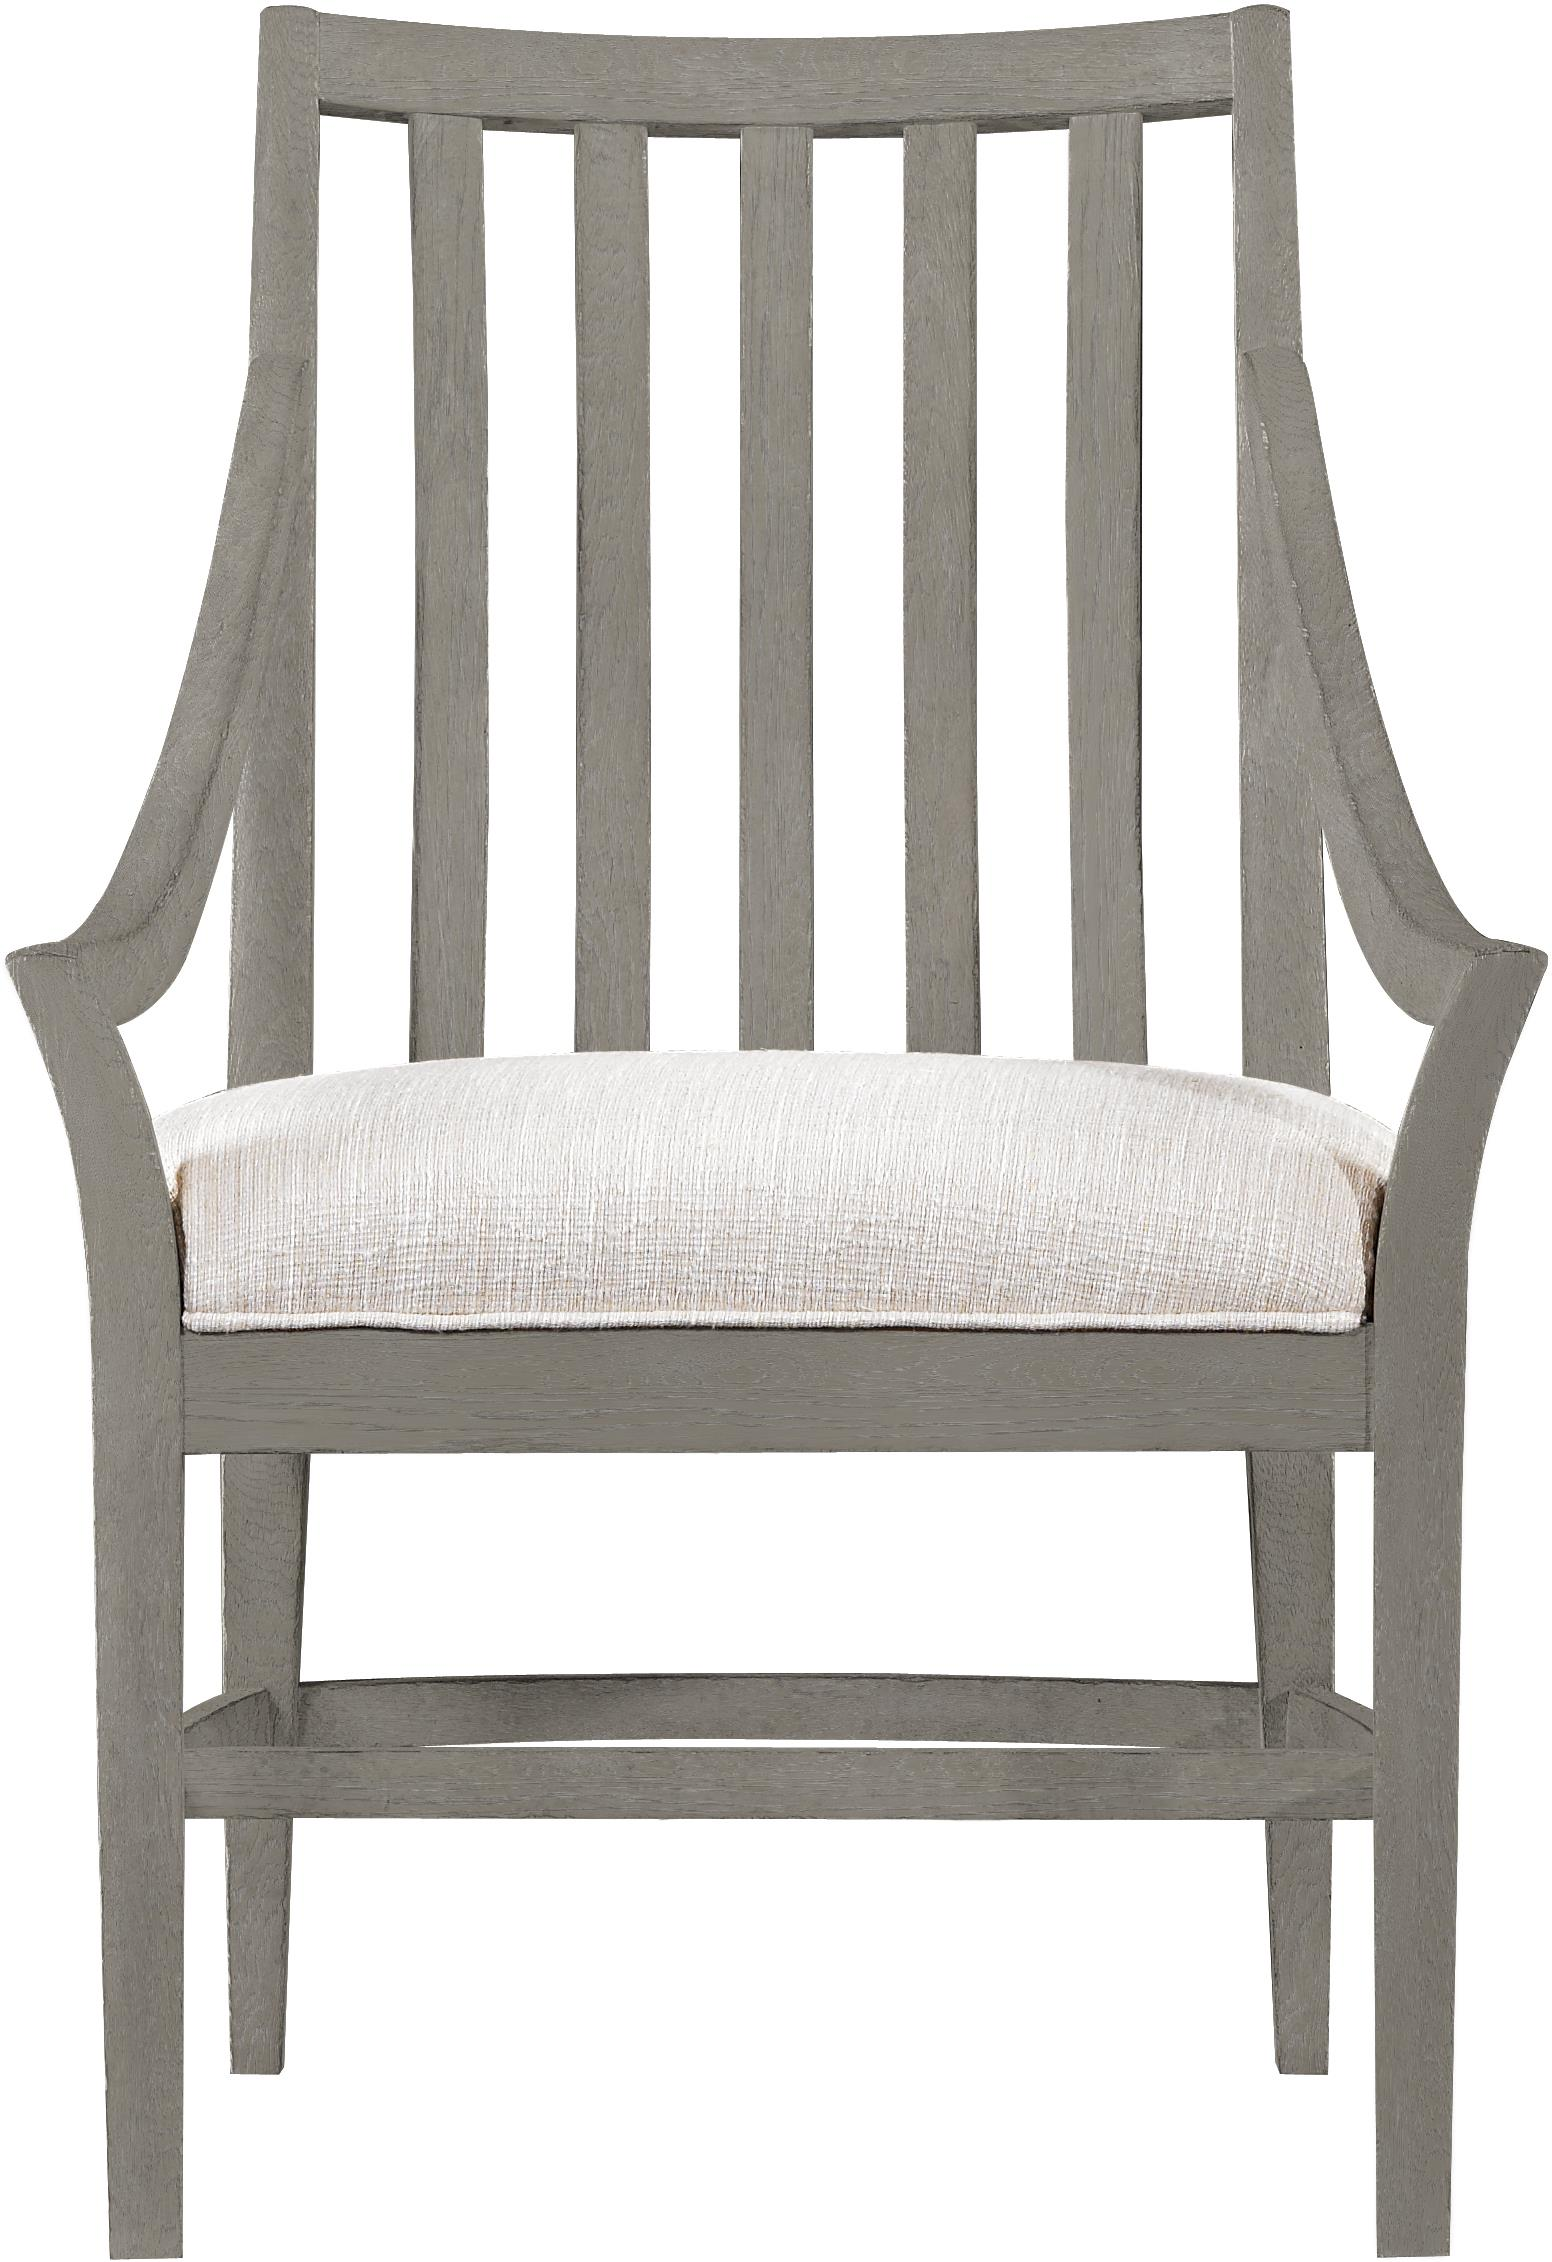 Stanley Furniture Coastal Living Resort By the Bay Dining Chair - Item Number: 062-C1-65